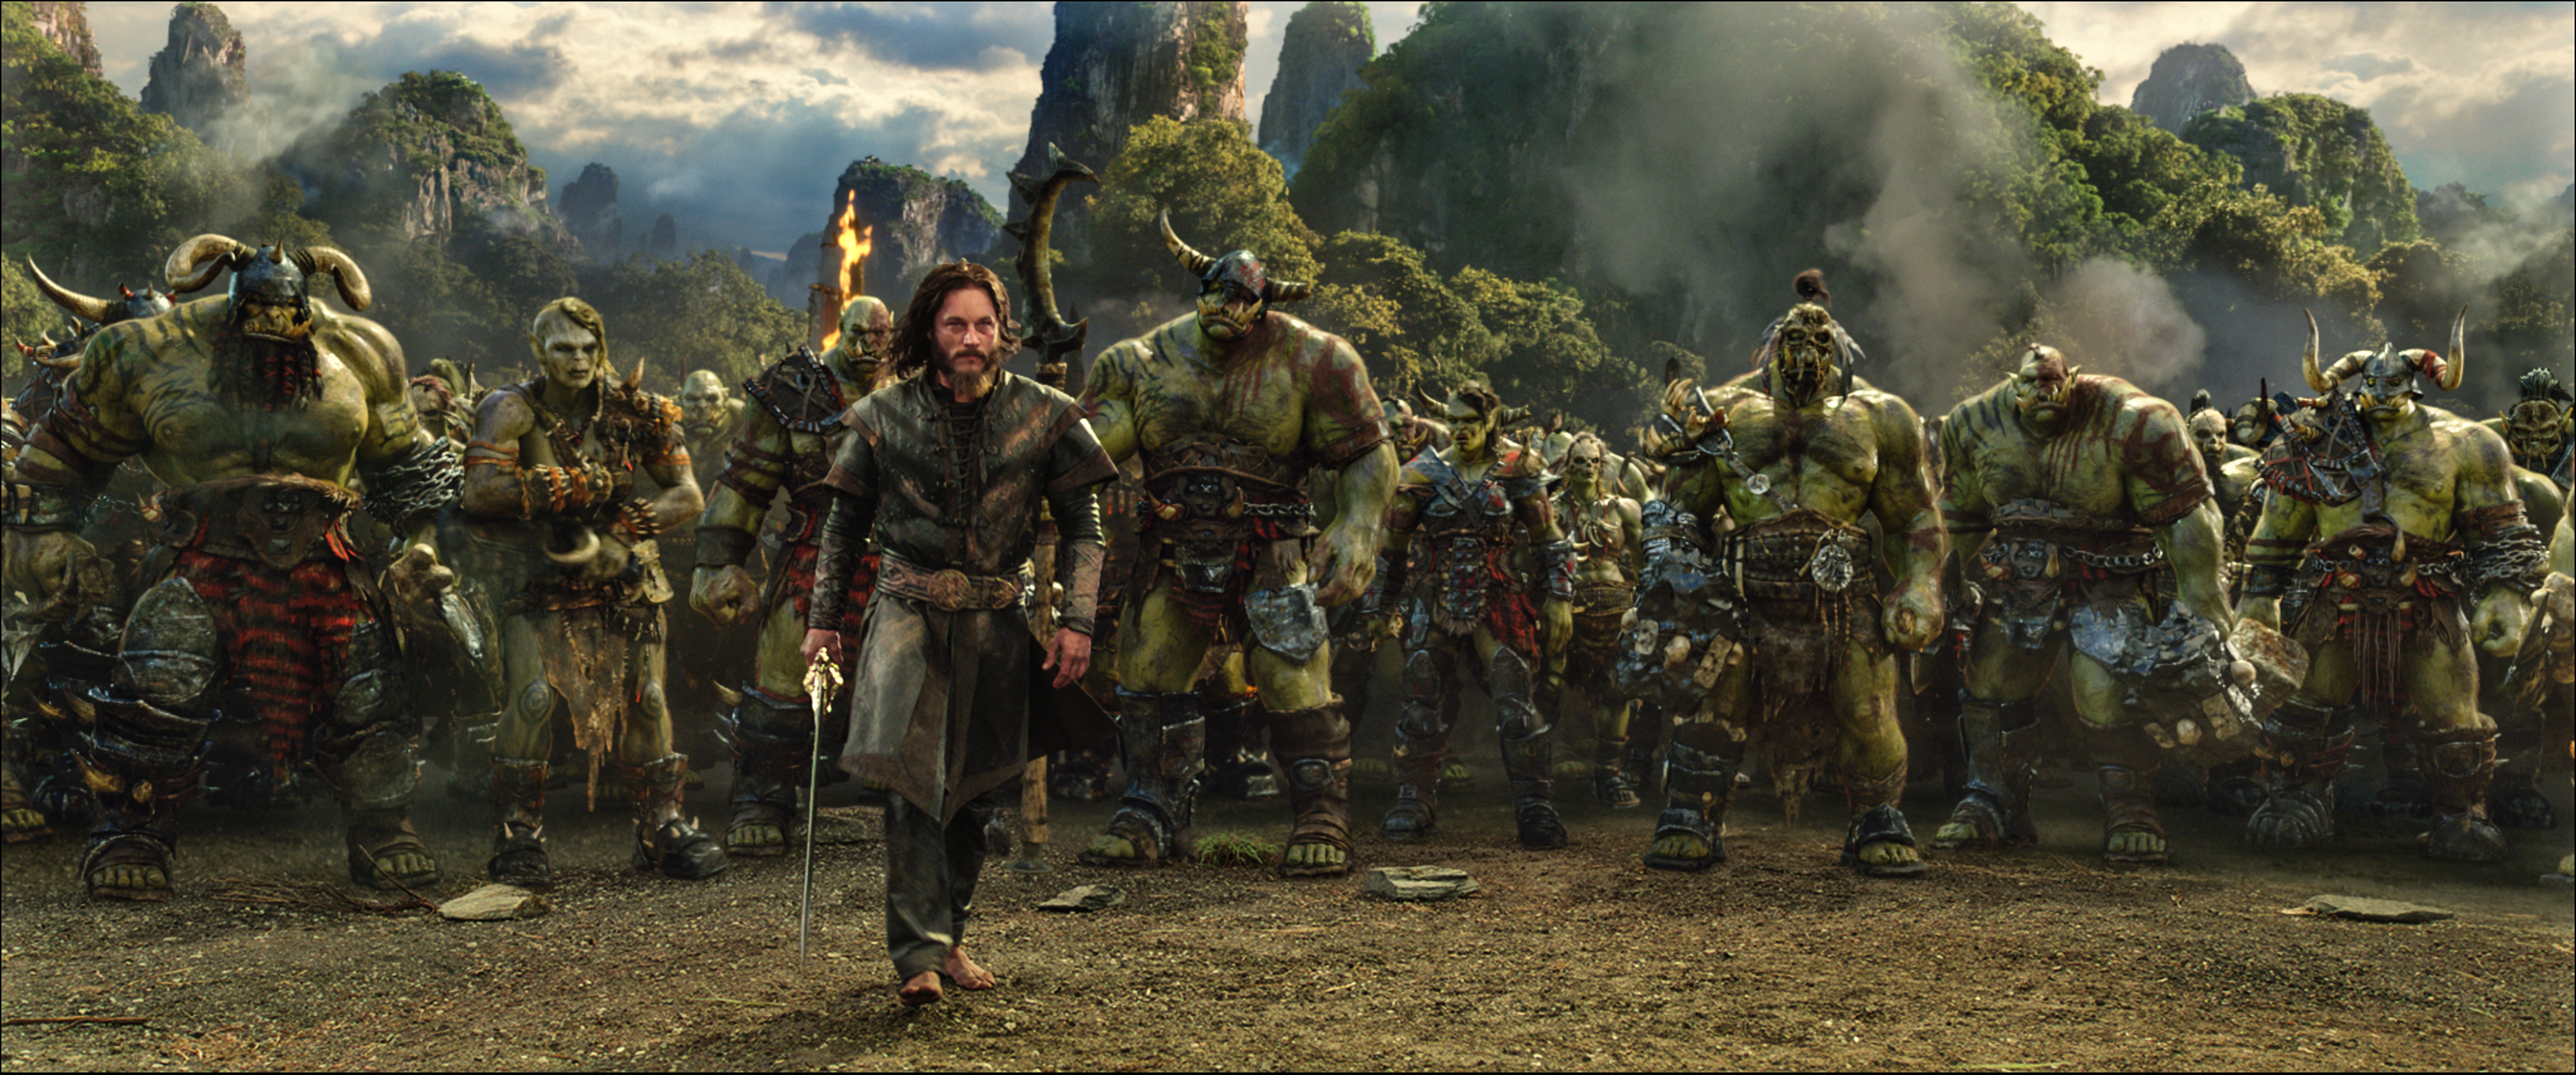 warcraft 2 movie release date 2018